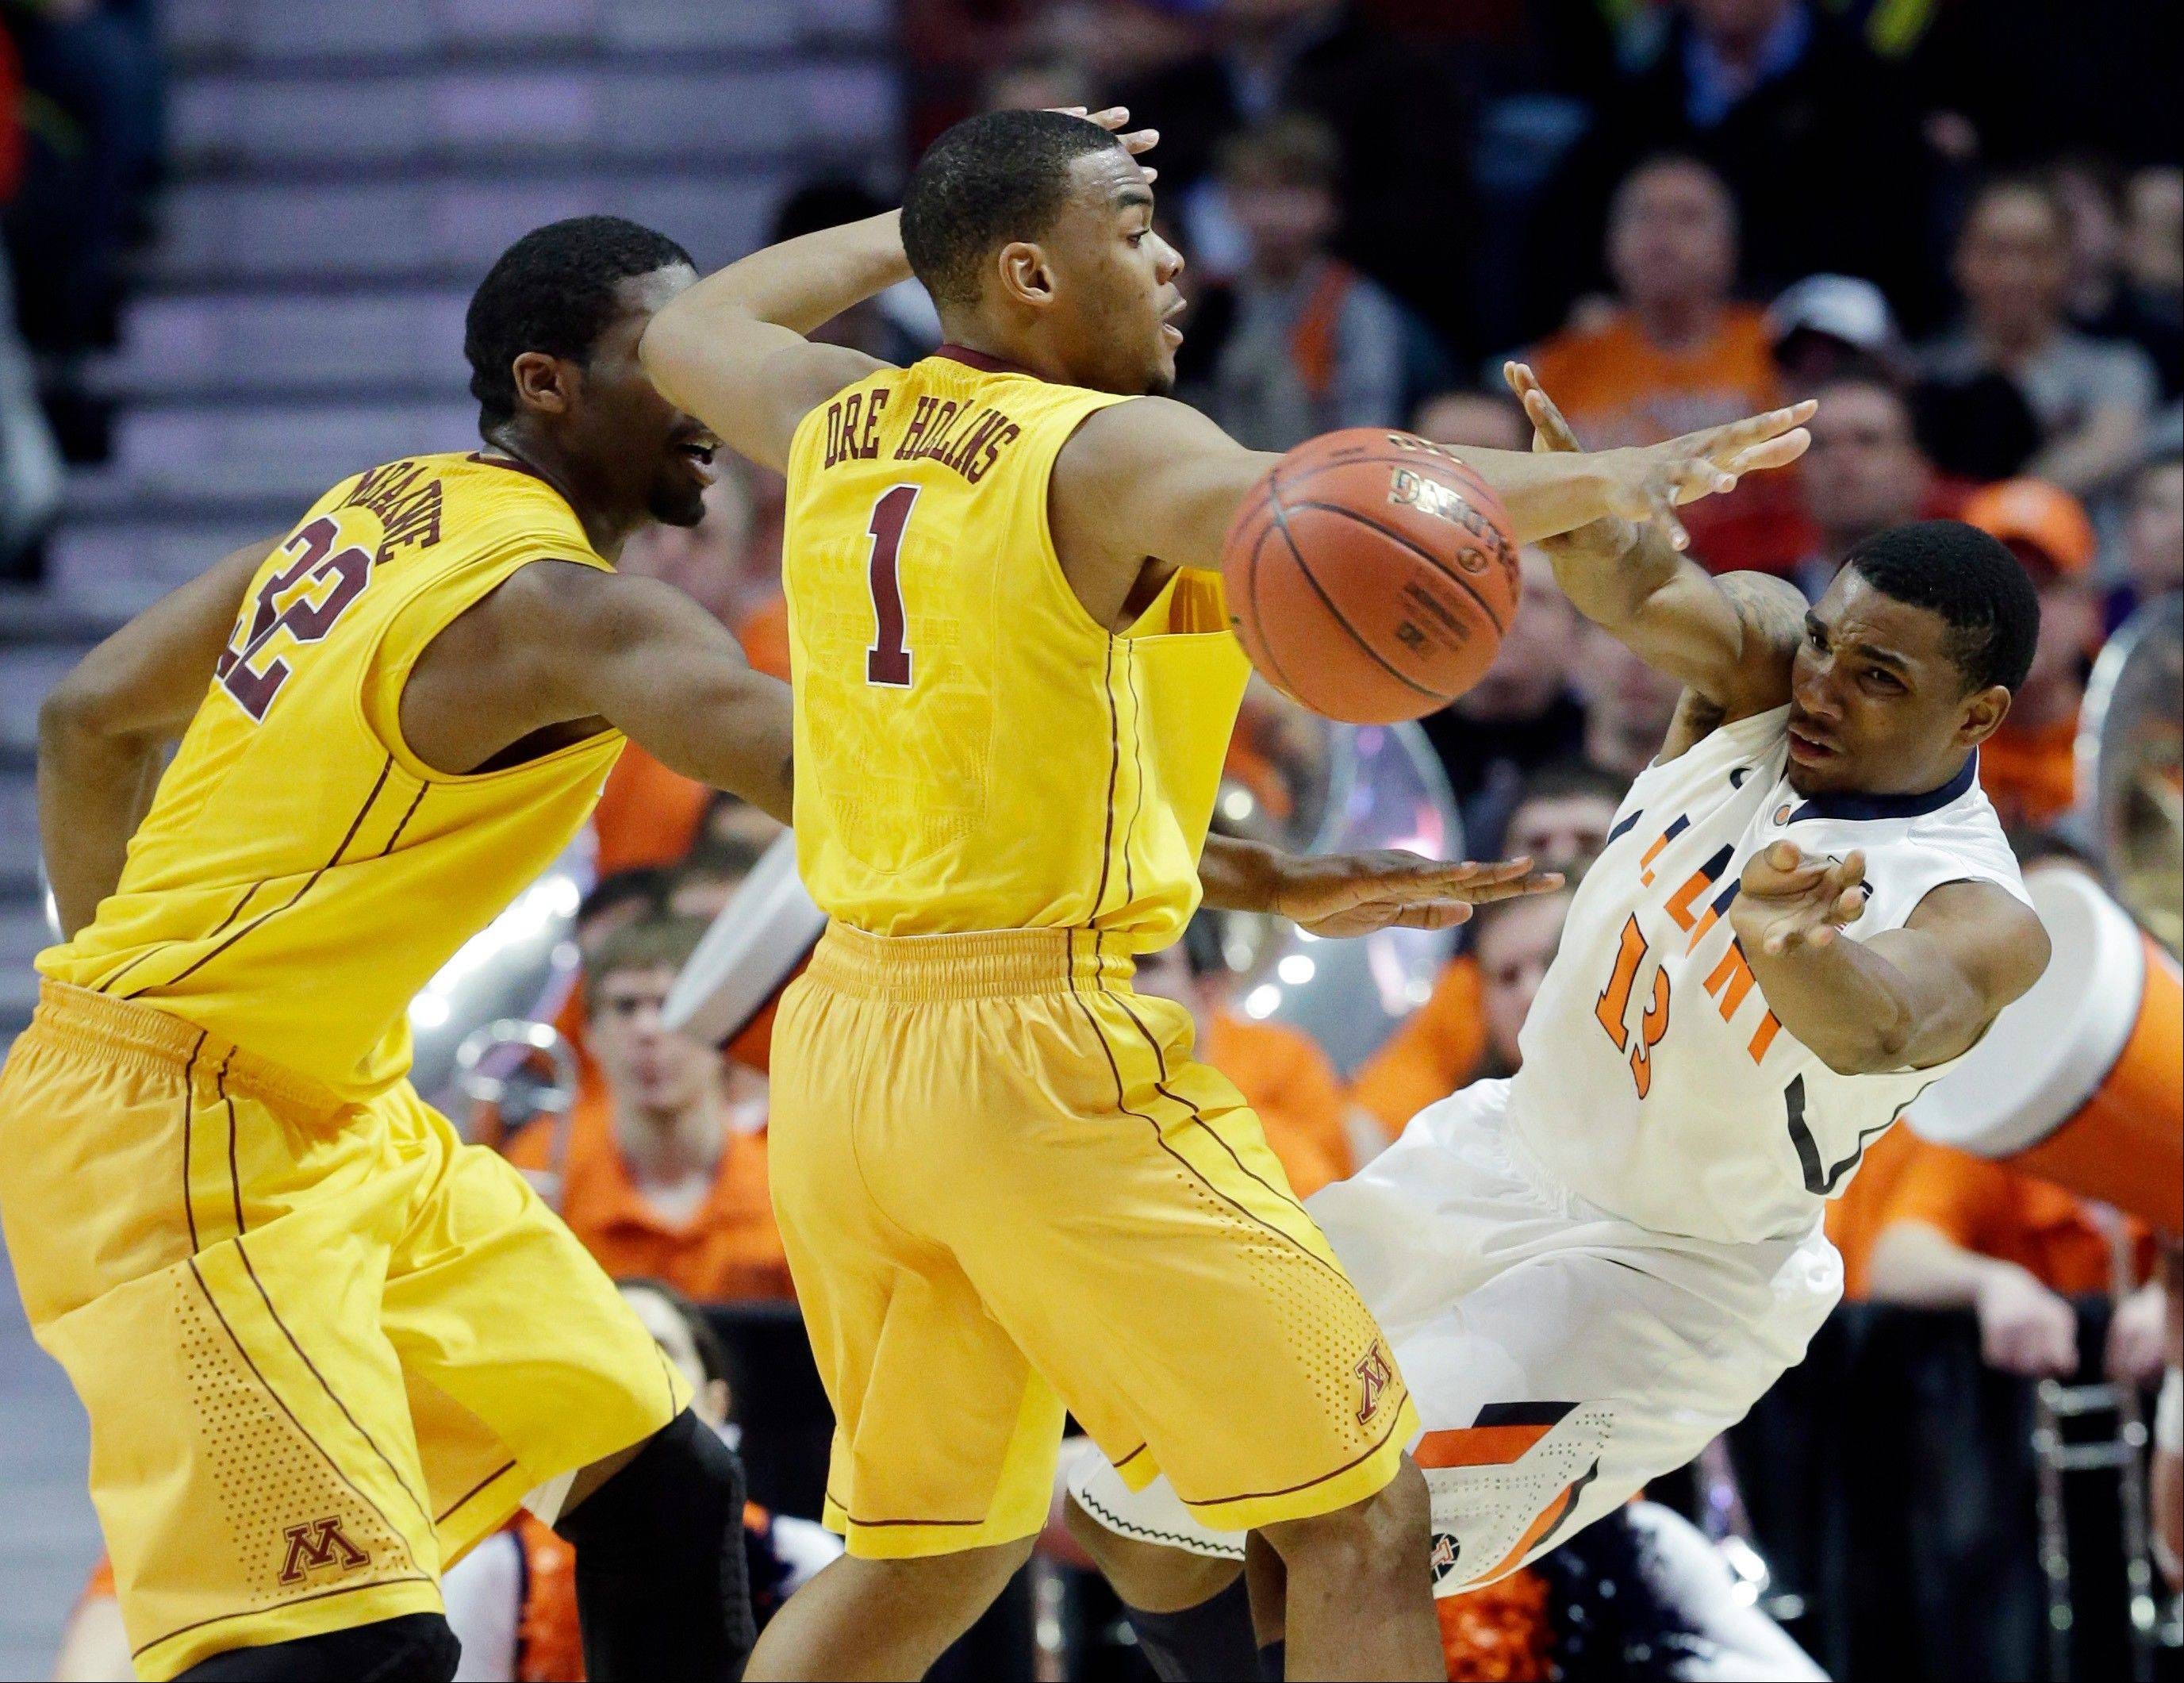 Illinois' Tracy Abrams passes around Minnesota's Andre Hollins (1) and Trevor Mbakwe (32) during the second half.